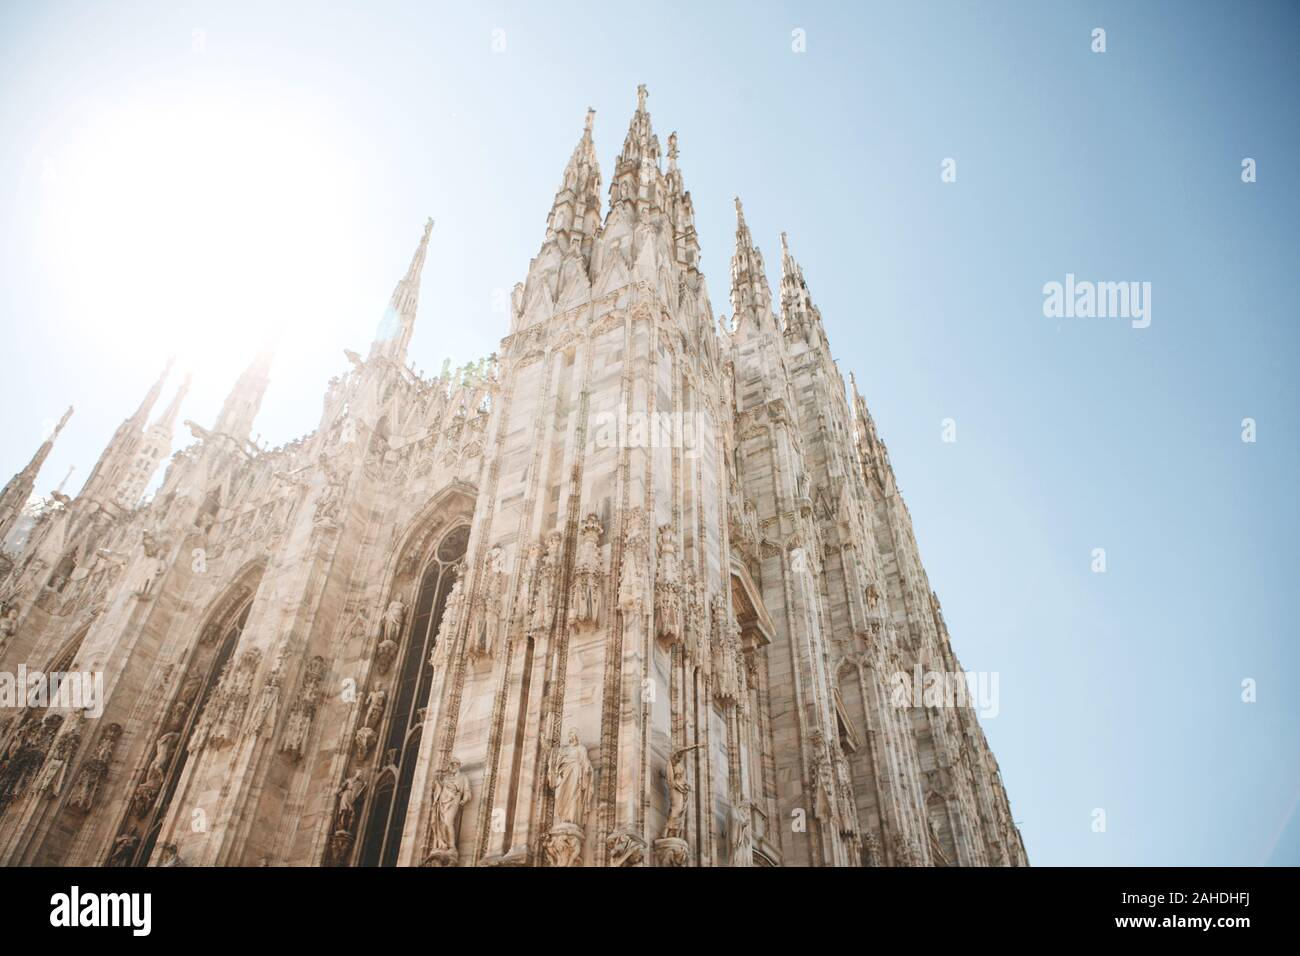 Beautiful view of the ancient Duomo Cathedral in Milan in Italy. It is one of the most popular tourist attractions in Italy. Stock Photo